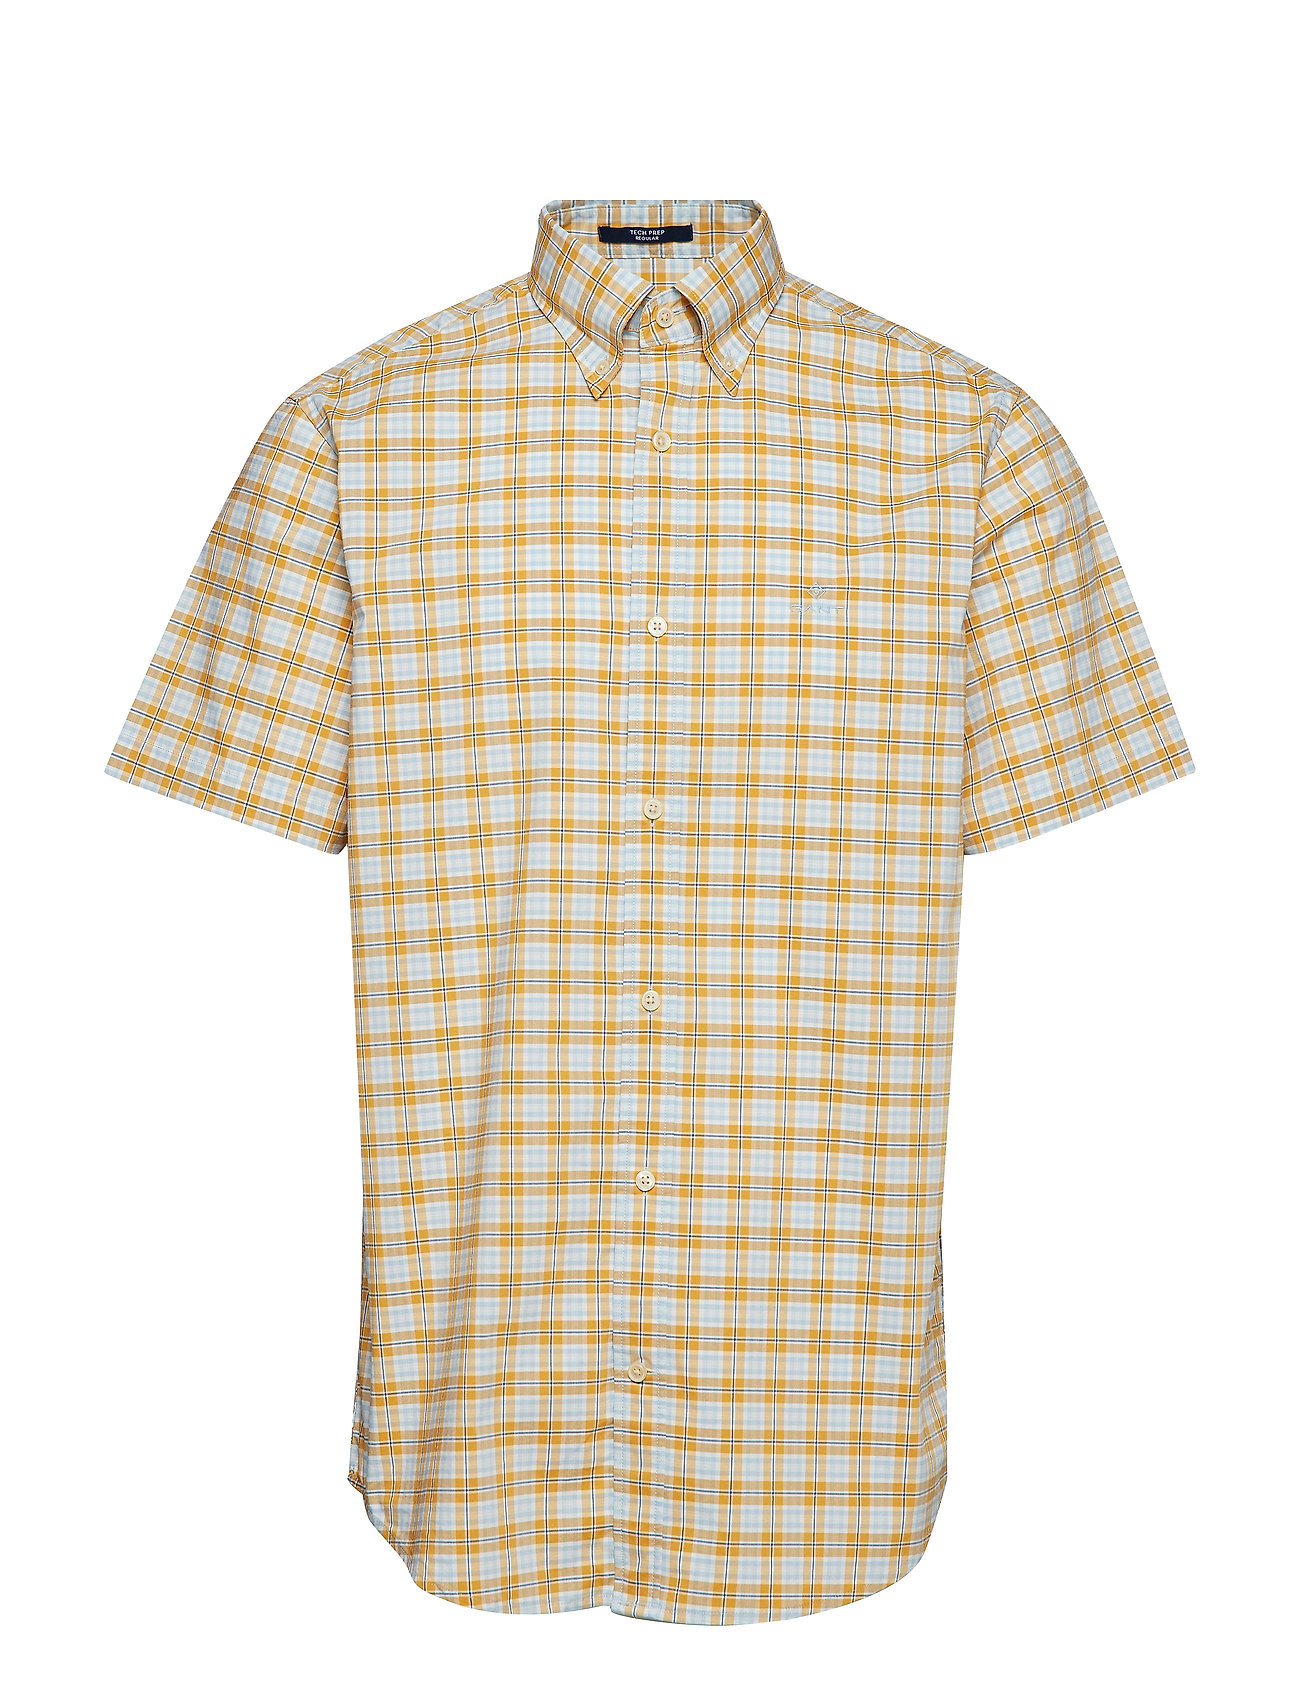 Gant D1. TP BROADCLOTH PLAID REG BD SS - HONEY GOLD